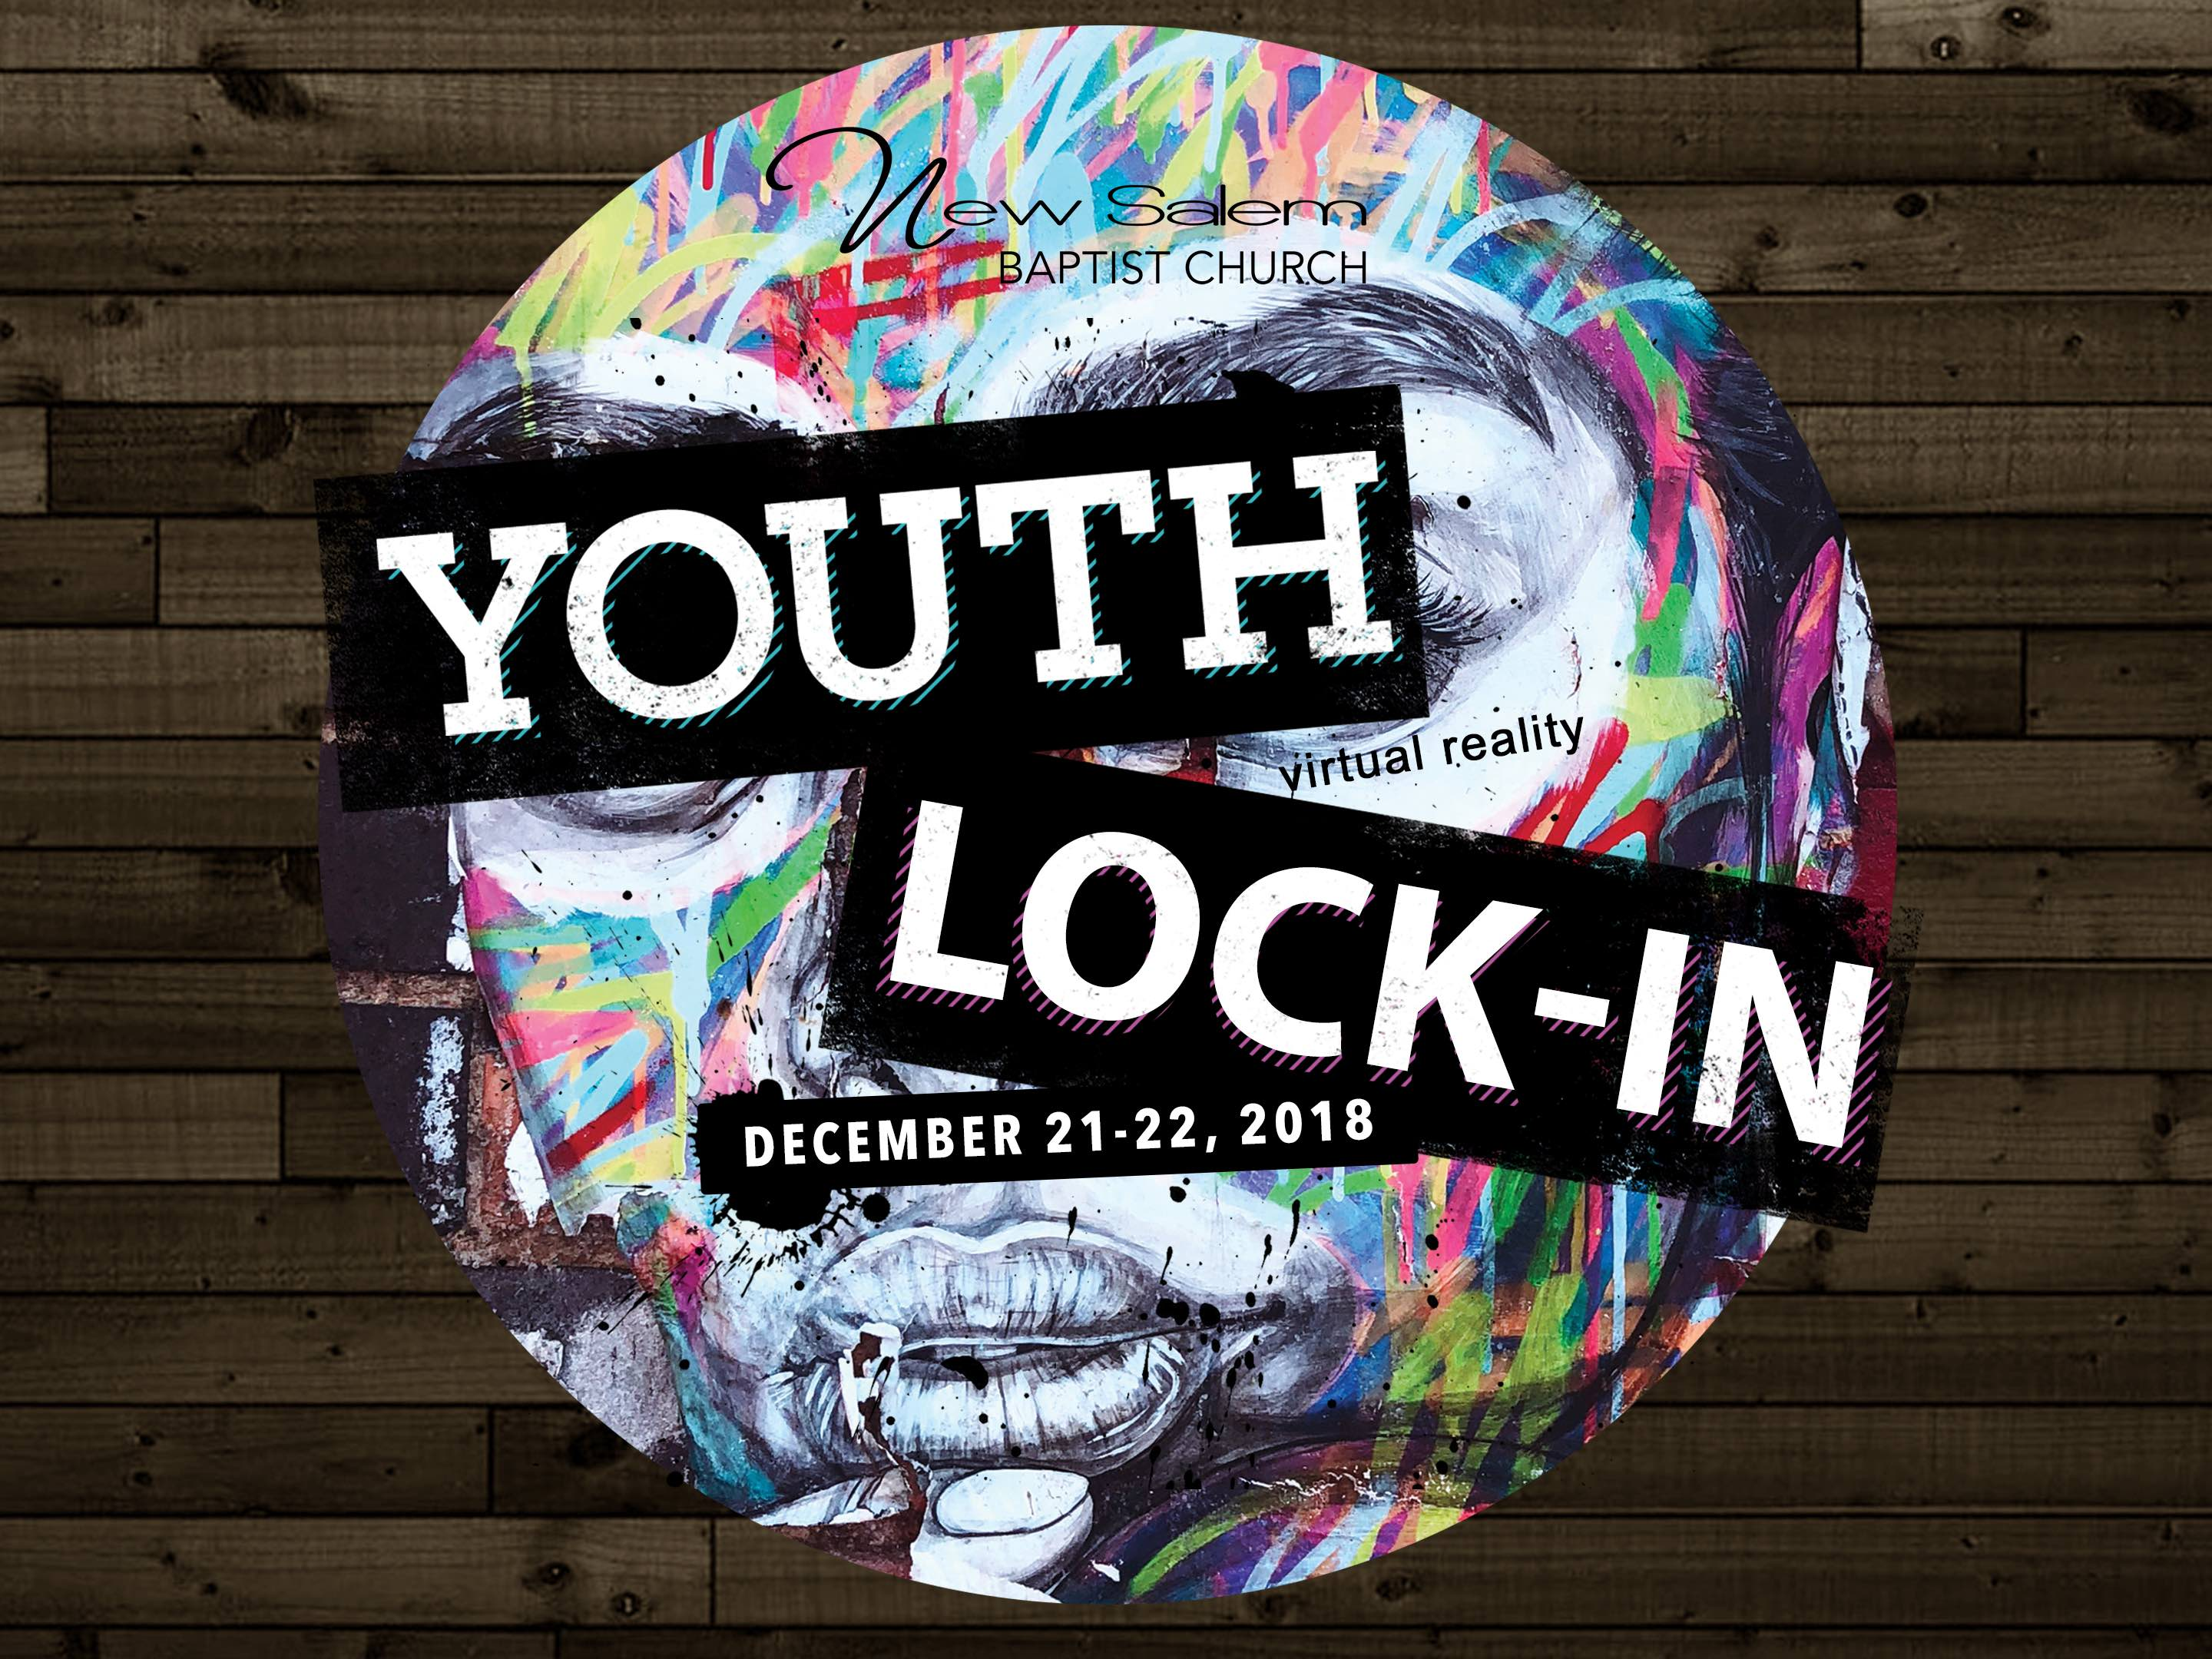 2018 Youth Lock-in